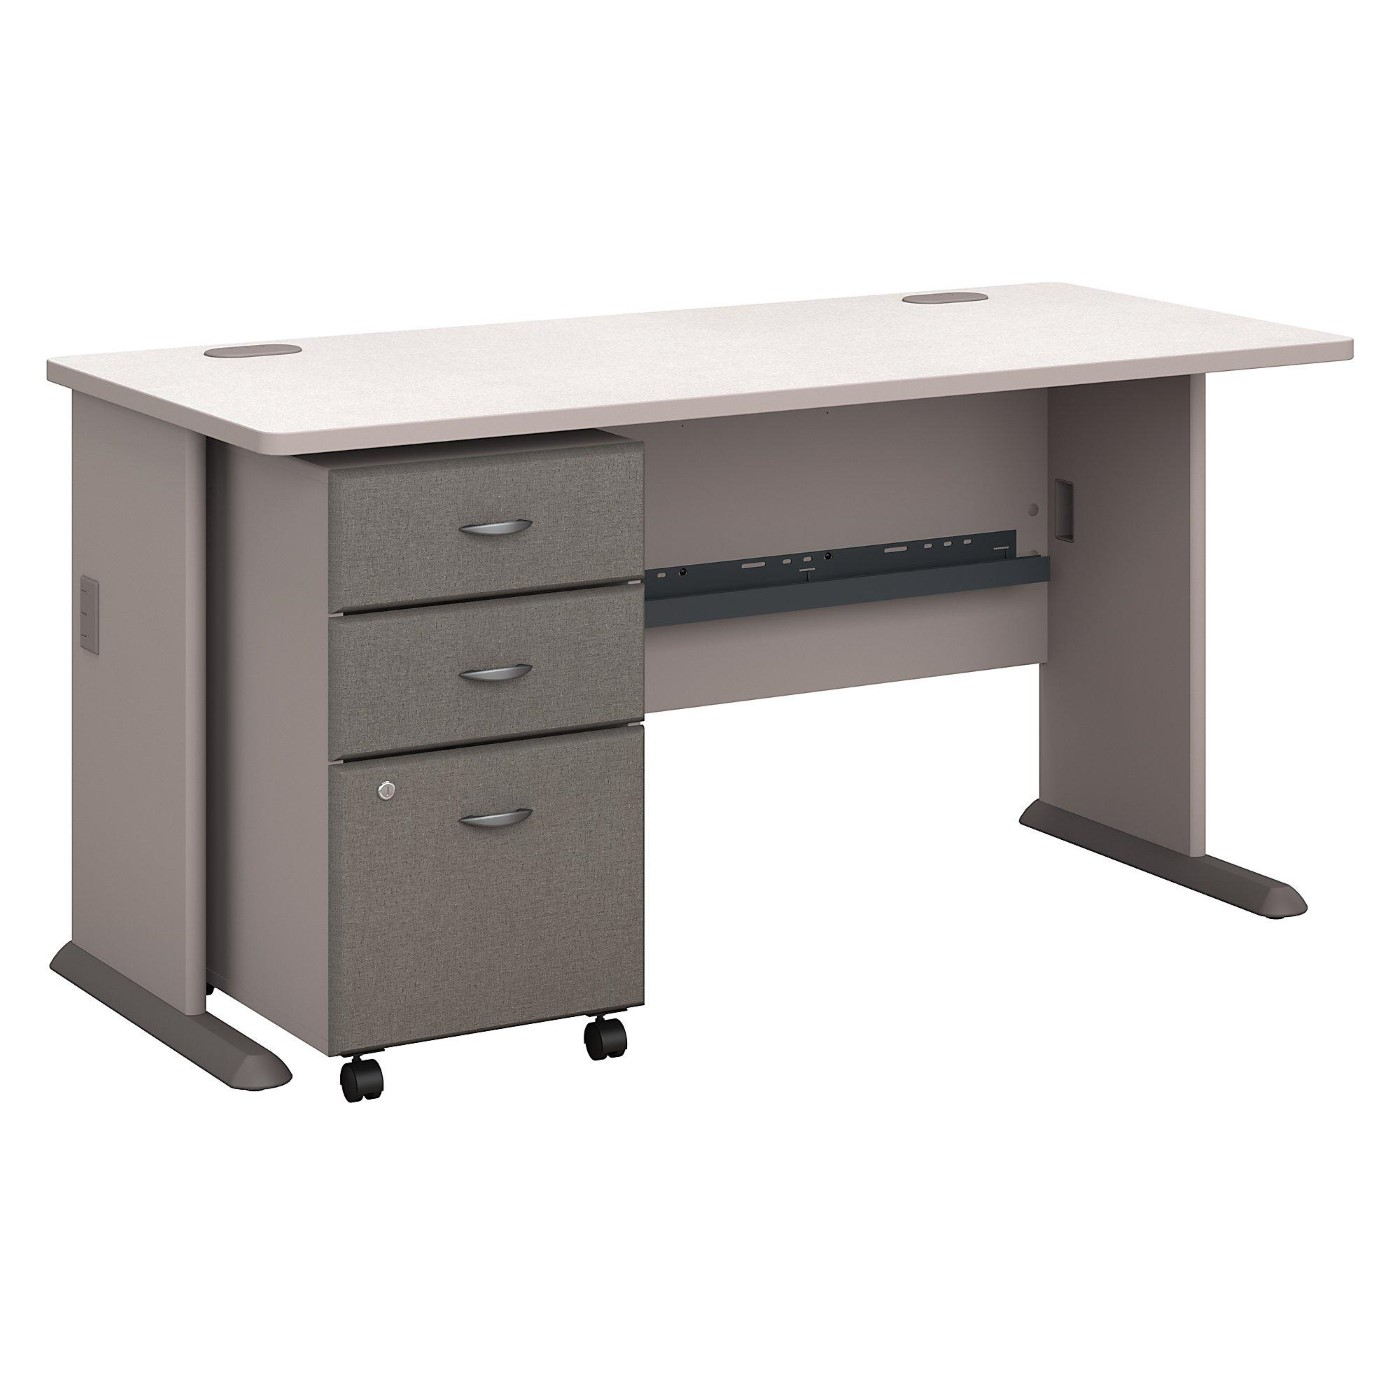 BUSH BUSINESS FURNITURE SERIES A 60W DESK WITH MOBILE FILE CABINET. FREE SHIPPING.